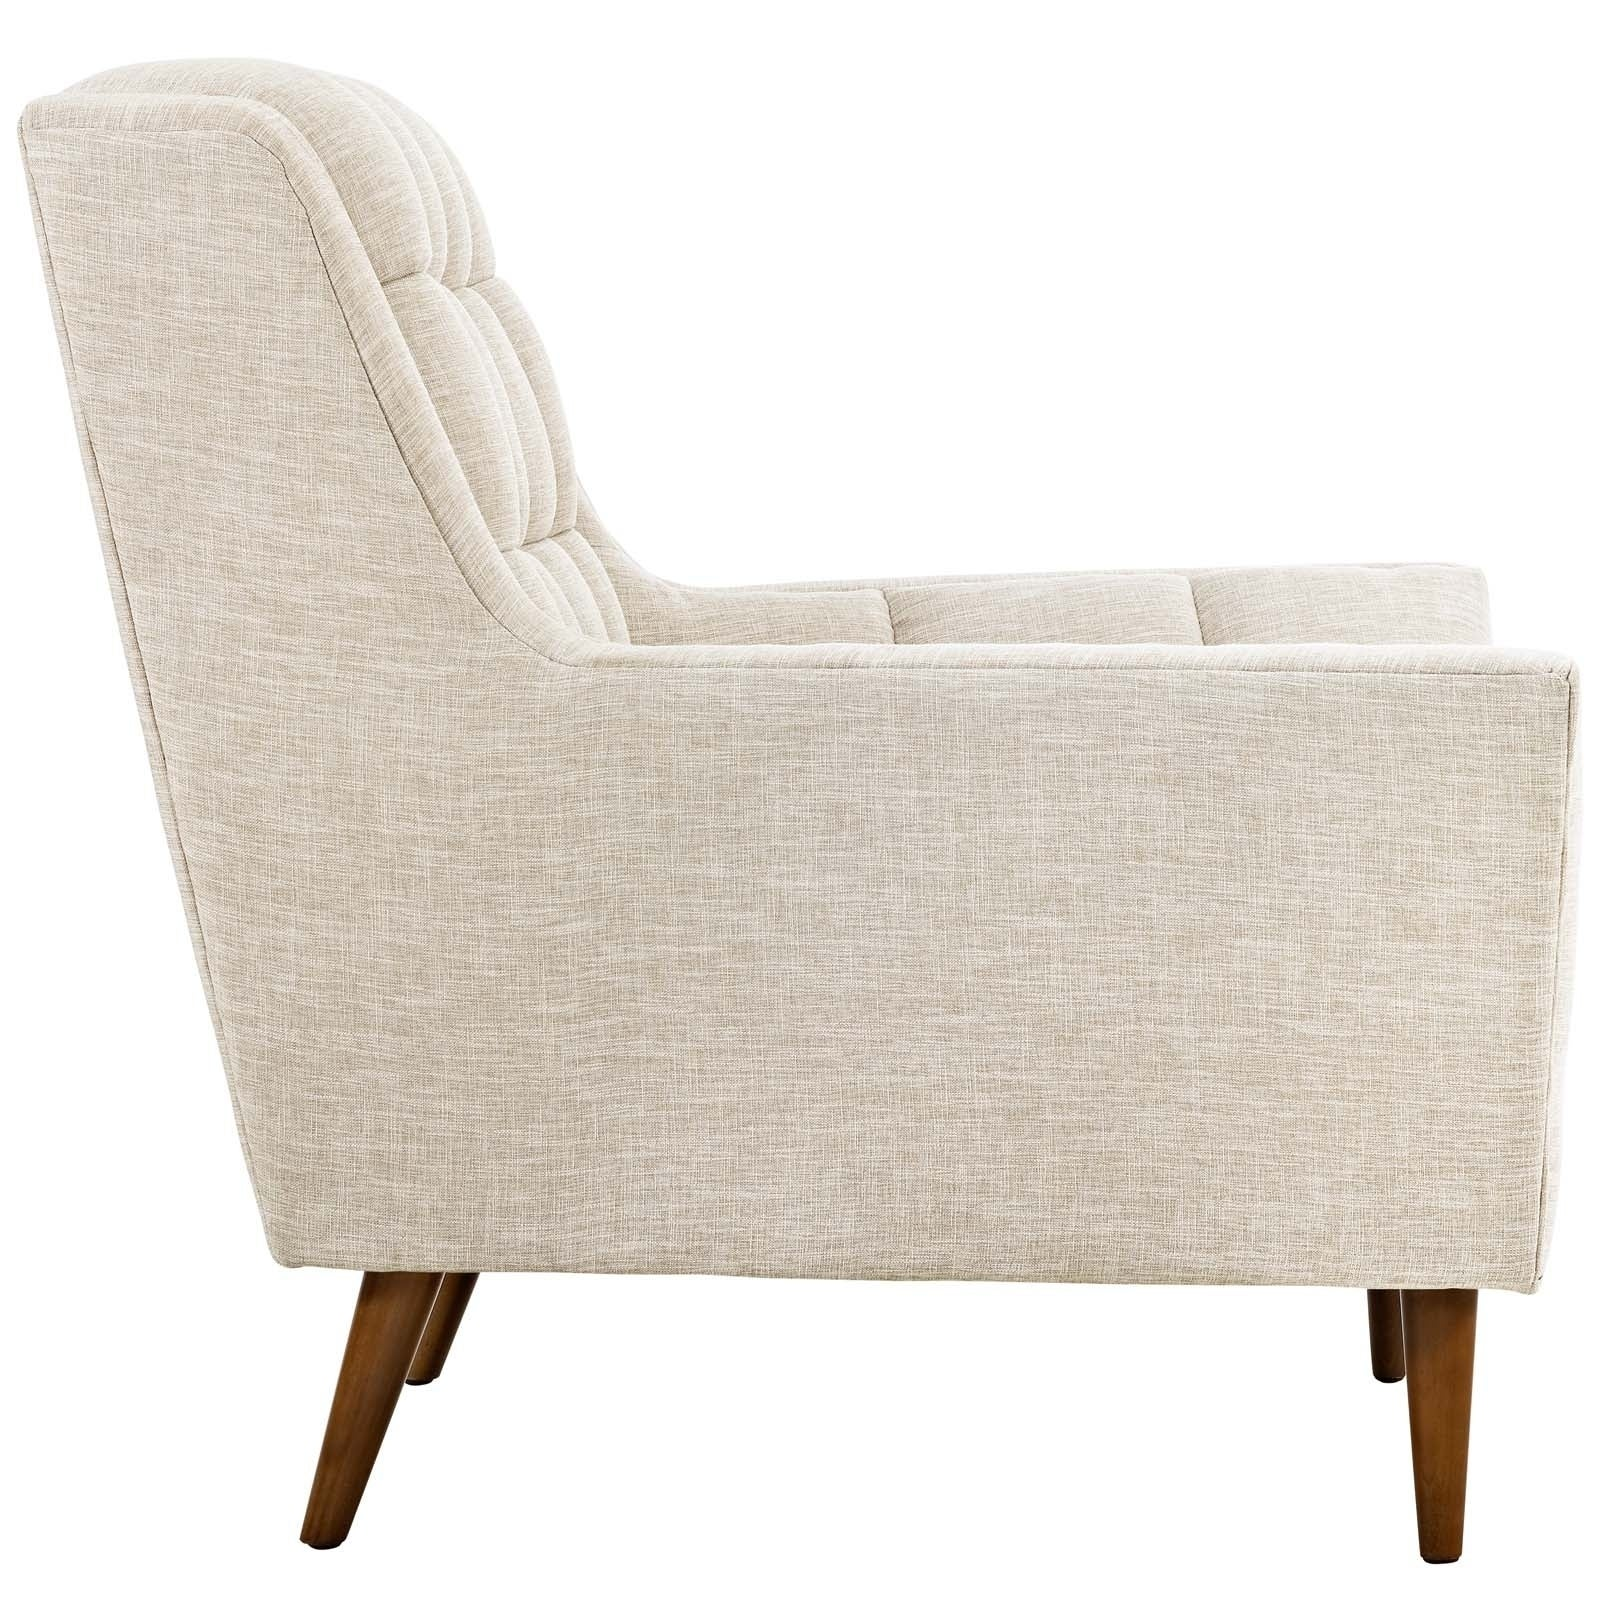 Shop Response Upholstered Fabric Armchair   On Sale   Free Shipping Today    Overstock.com   18270926